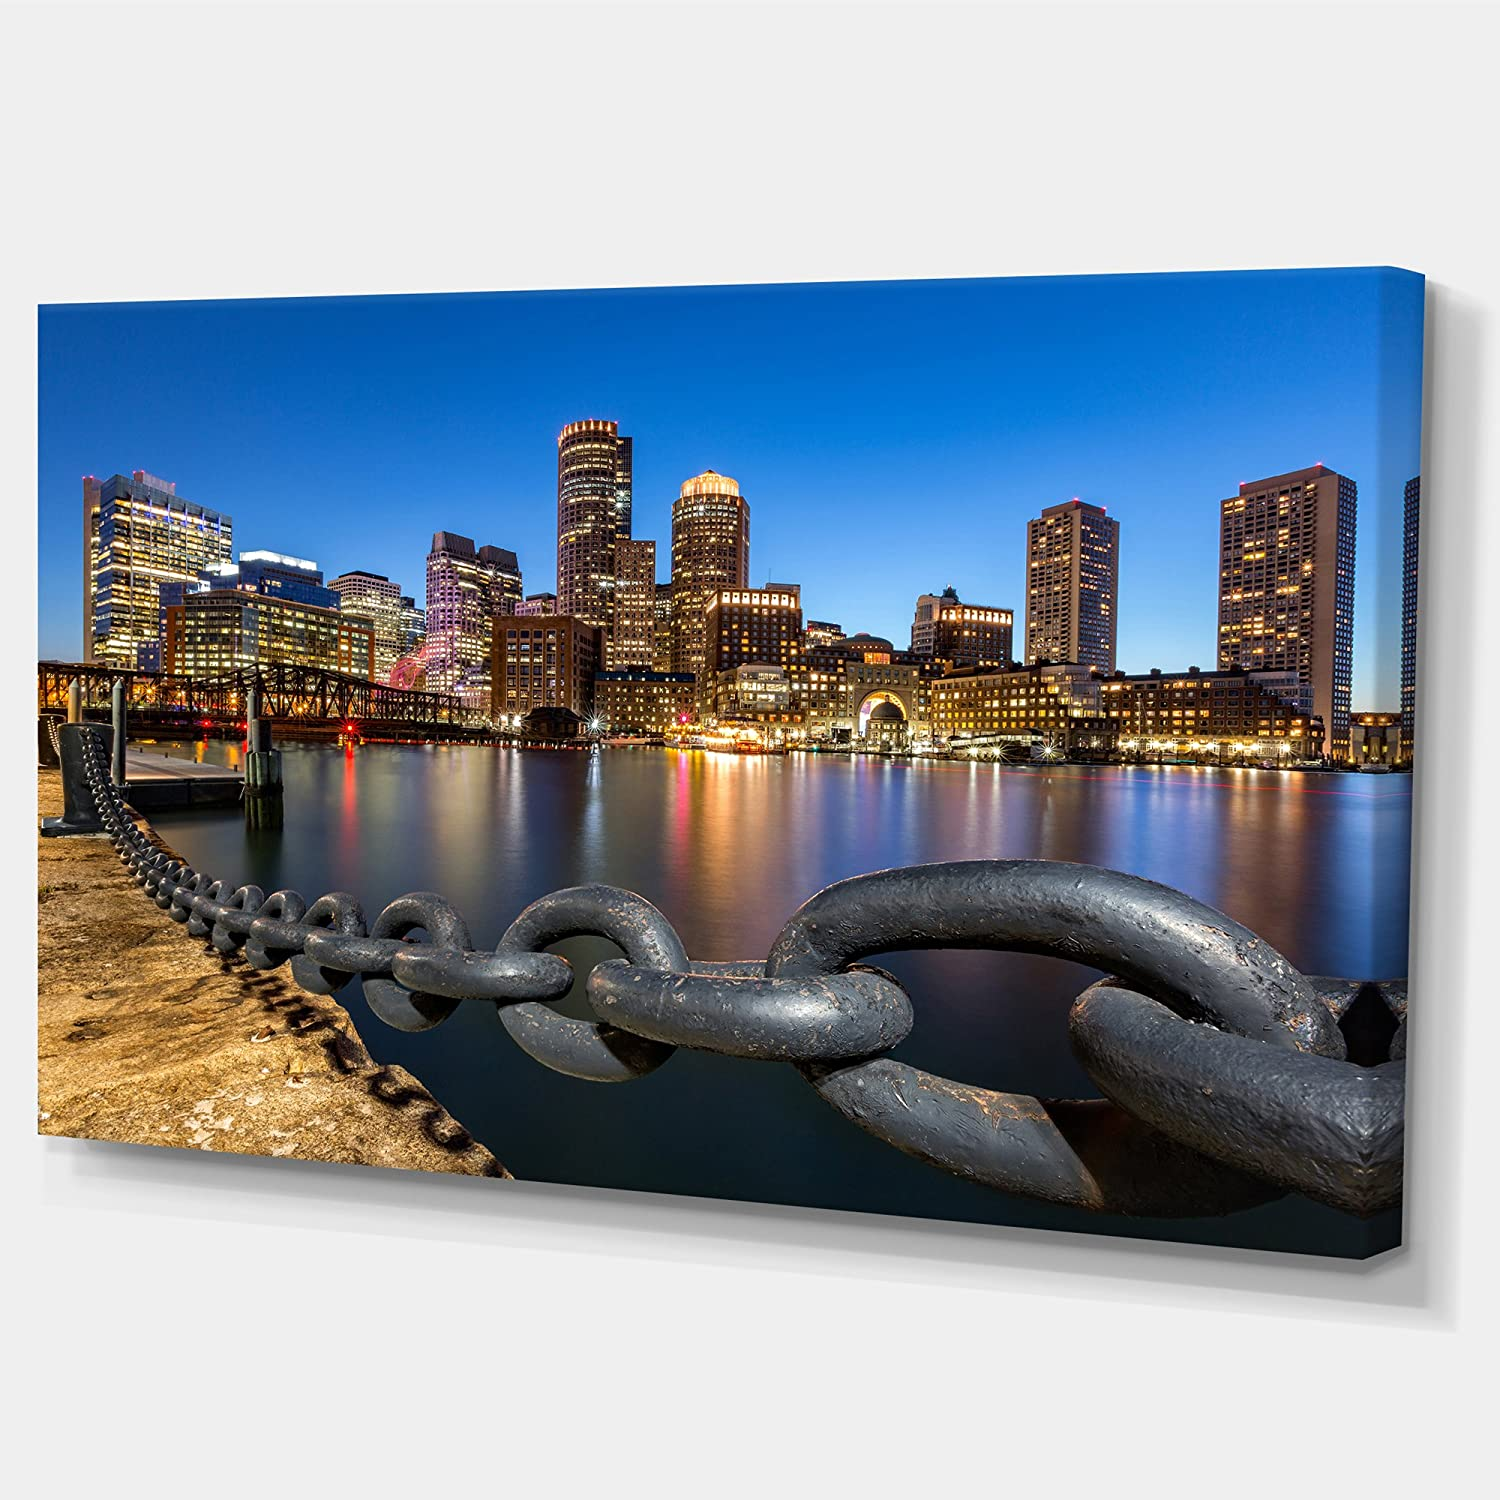 60x28-5 Equal Panels Designart Boston Skyline at Dusk-Cityscape Photo Canvas Print-60x28-5